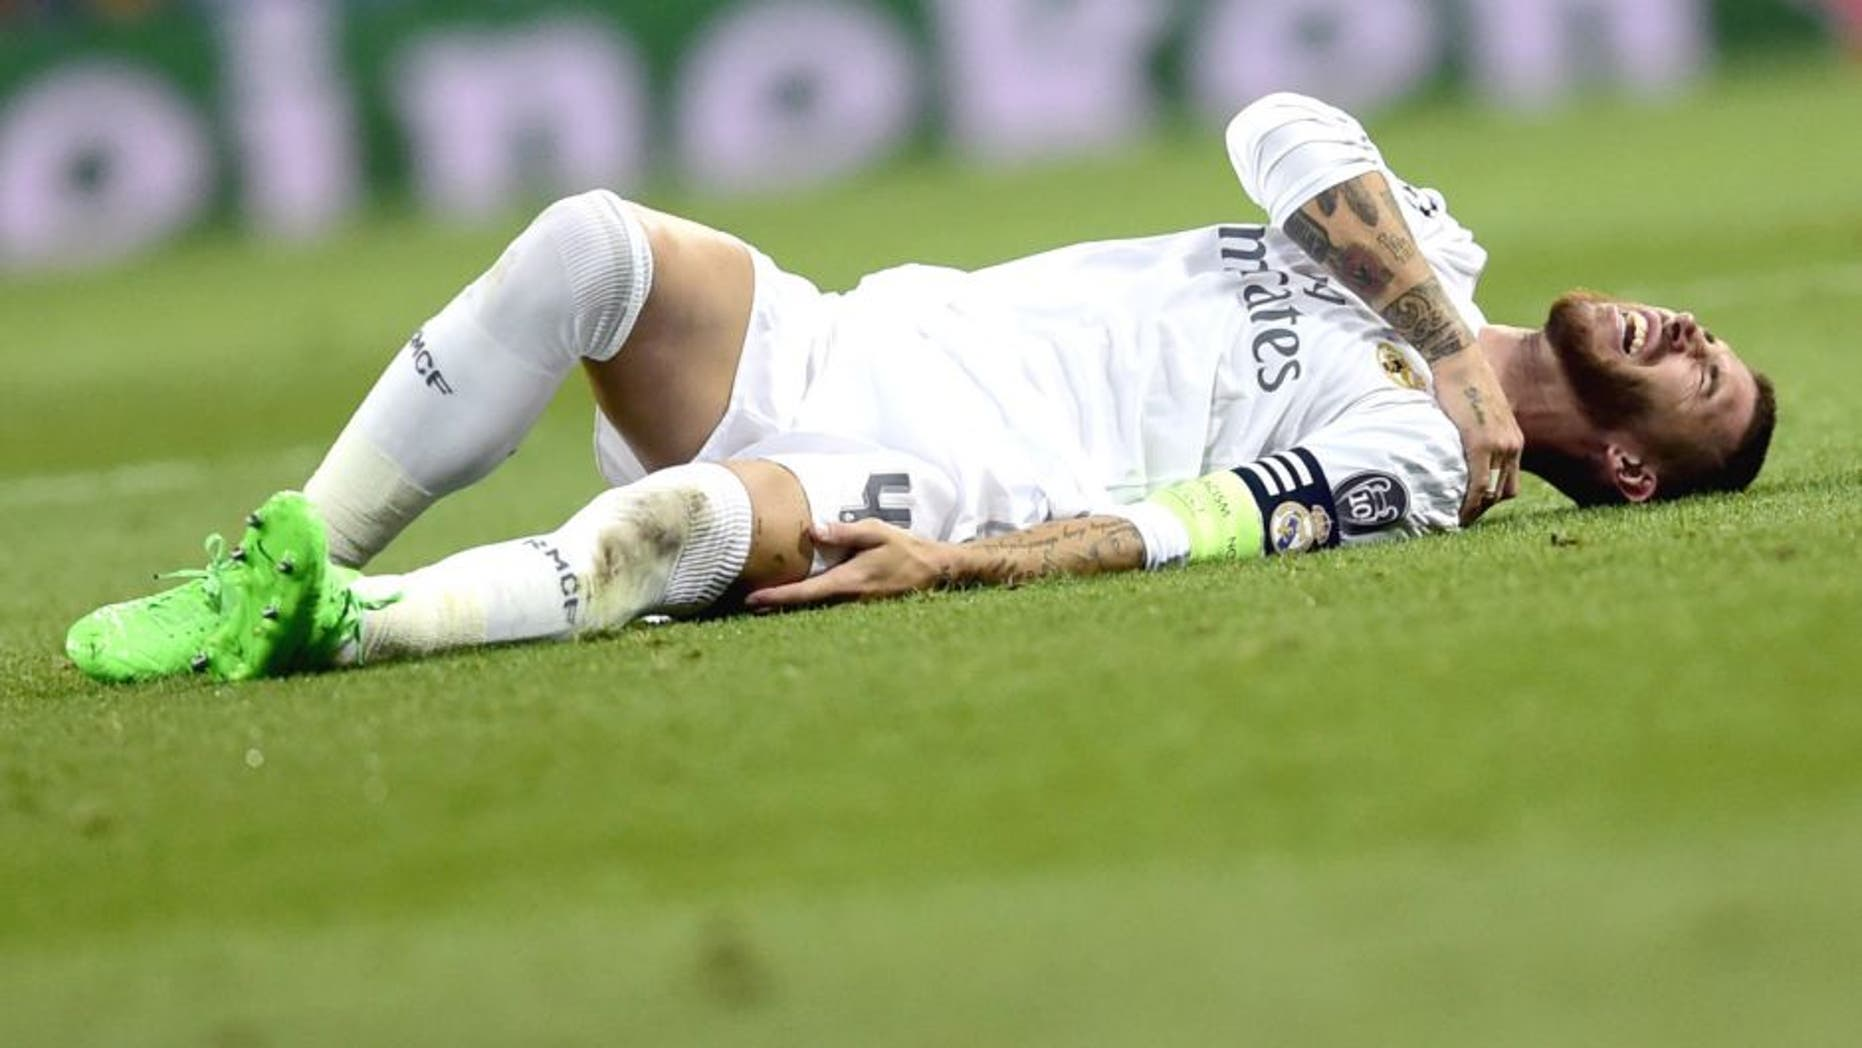 Real Madrid's defender Sergio Ramos complains on the ground during the UEFA Champions League group A football match Real Madrid CF vs FC Shakhtar Donetsk at the Santiago Bernabeu stadium in Madrid on September 15, 2015. AFP PHOTO/ JAVIER SORIANO (Photo credit should read JAVIER SORIANO/AFP/Getty Images)